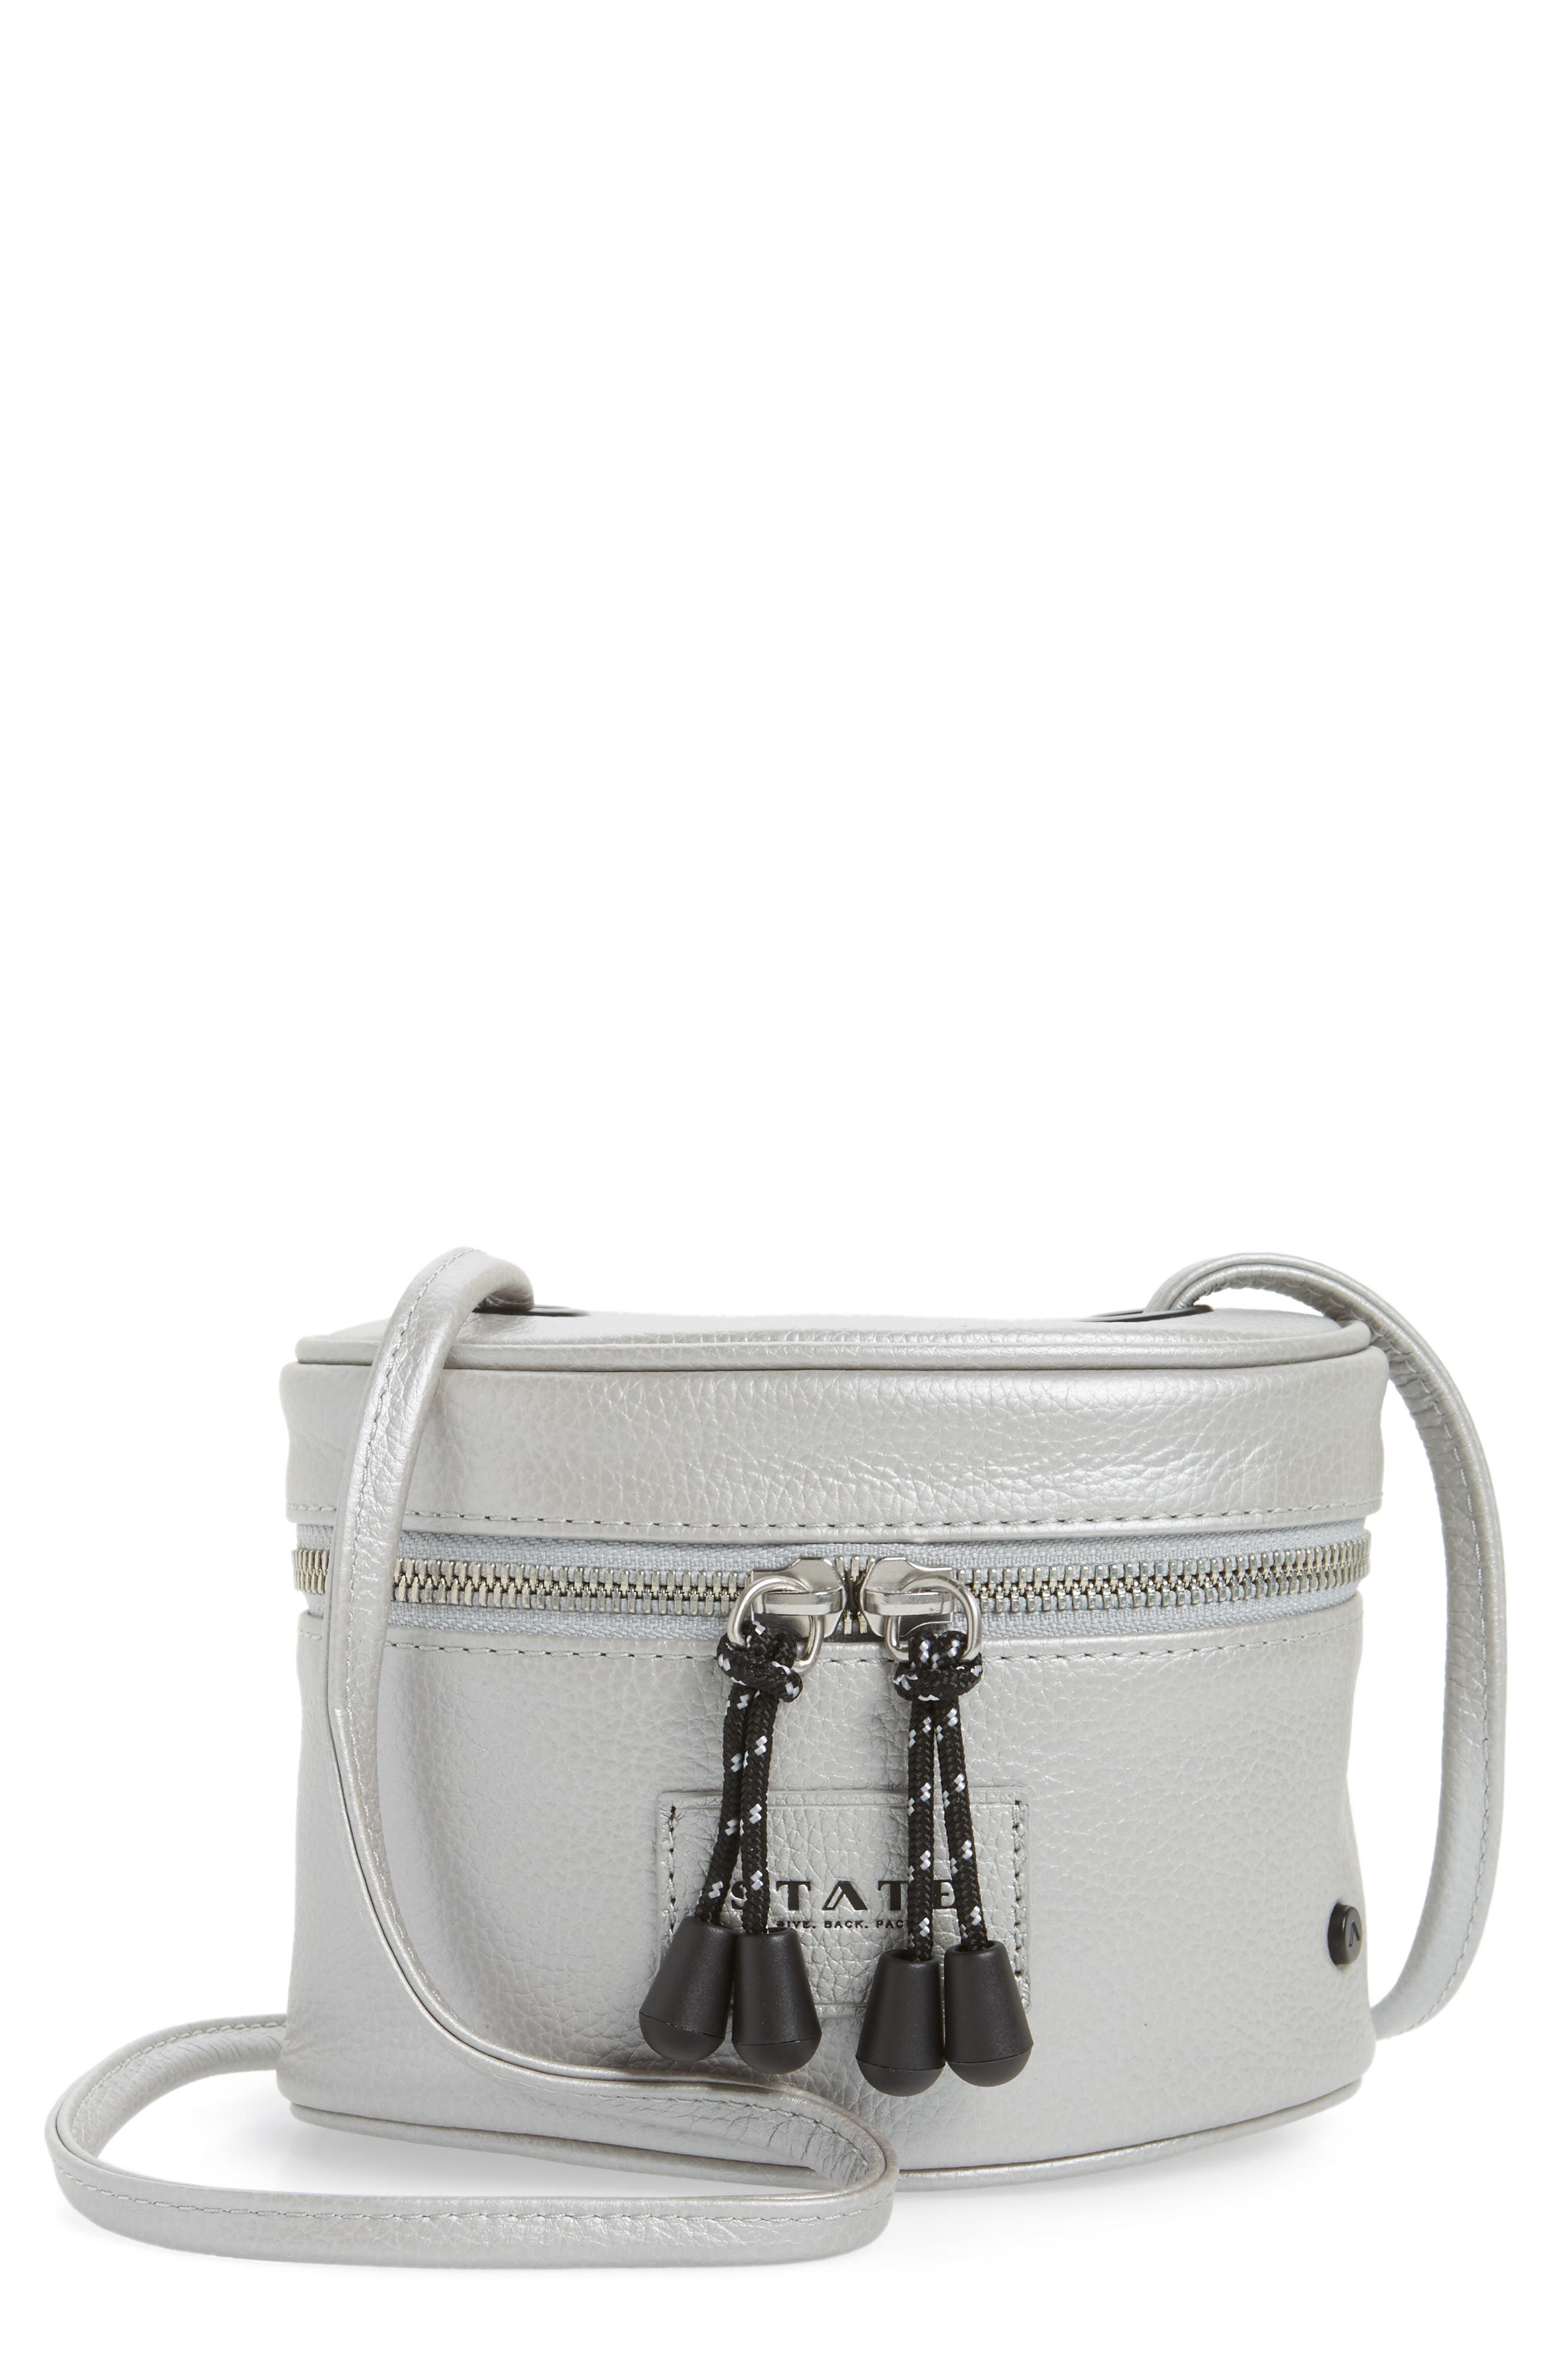 Greenwood Autumn Leather Crossbody Bag,                             Main thumbnail 1, color,